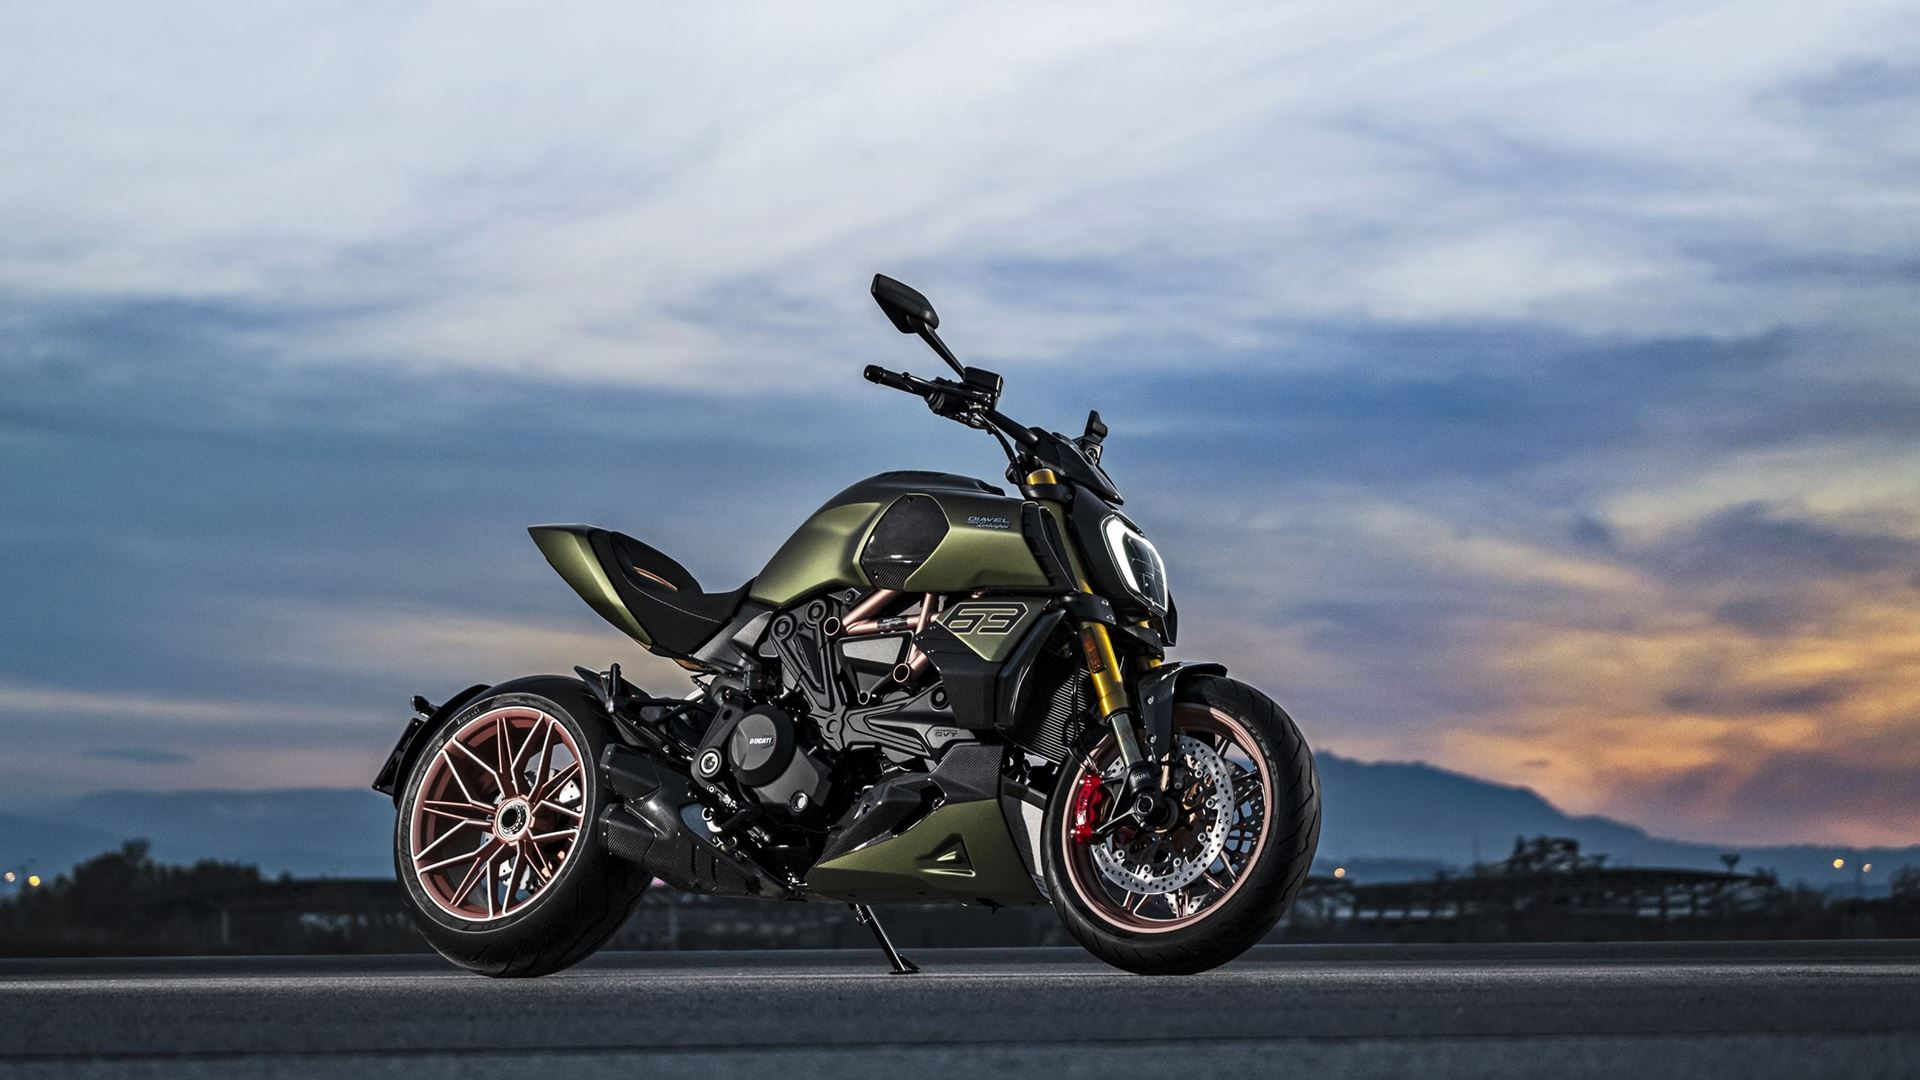 A unique project is born: Ducati Diavel 1260 Lamborghini, inspired by the Sián FKP 37 - Image 7